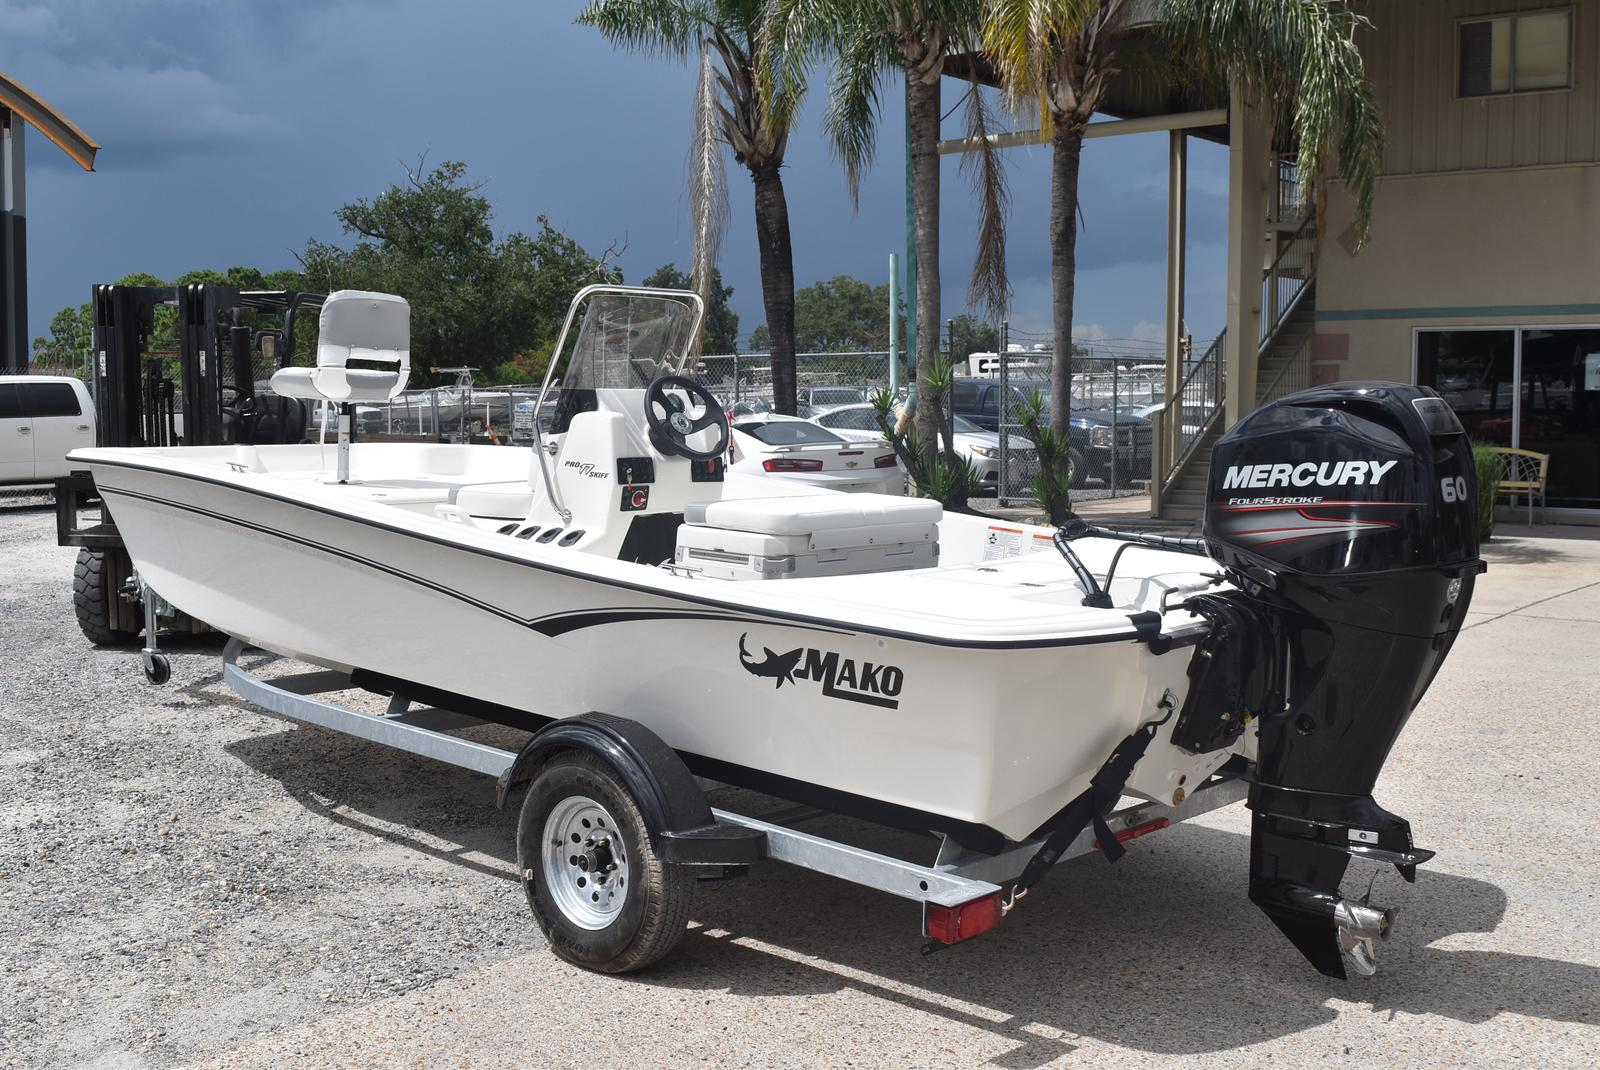 2020 Mako boat for sale, model of the boat is Pro Skiff 17, 75 ELPT & Image # 172 of 702